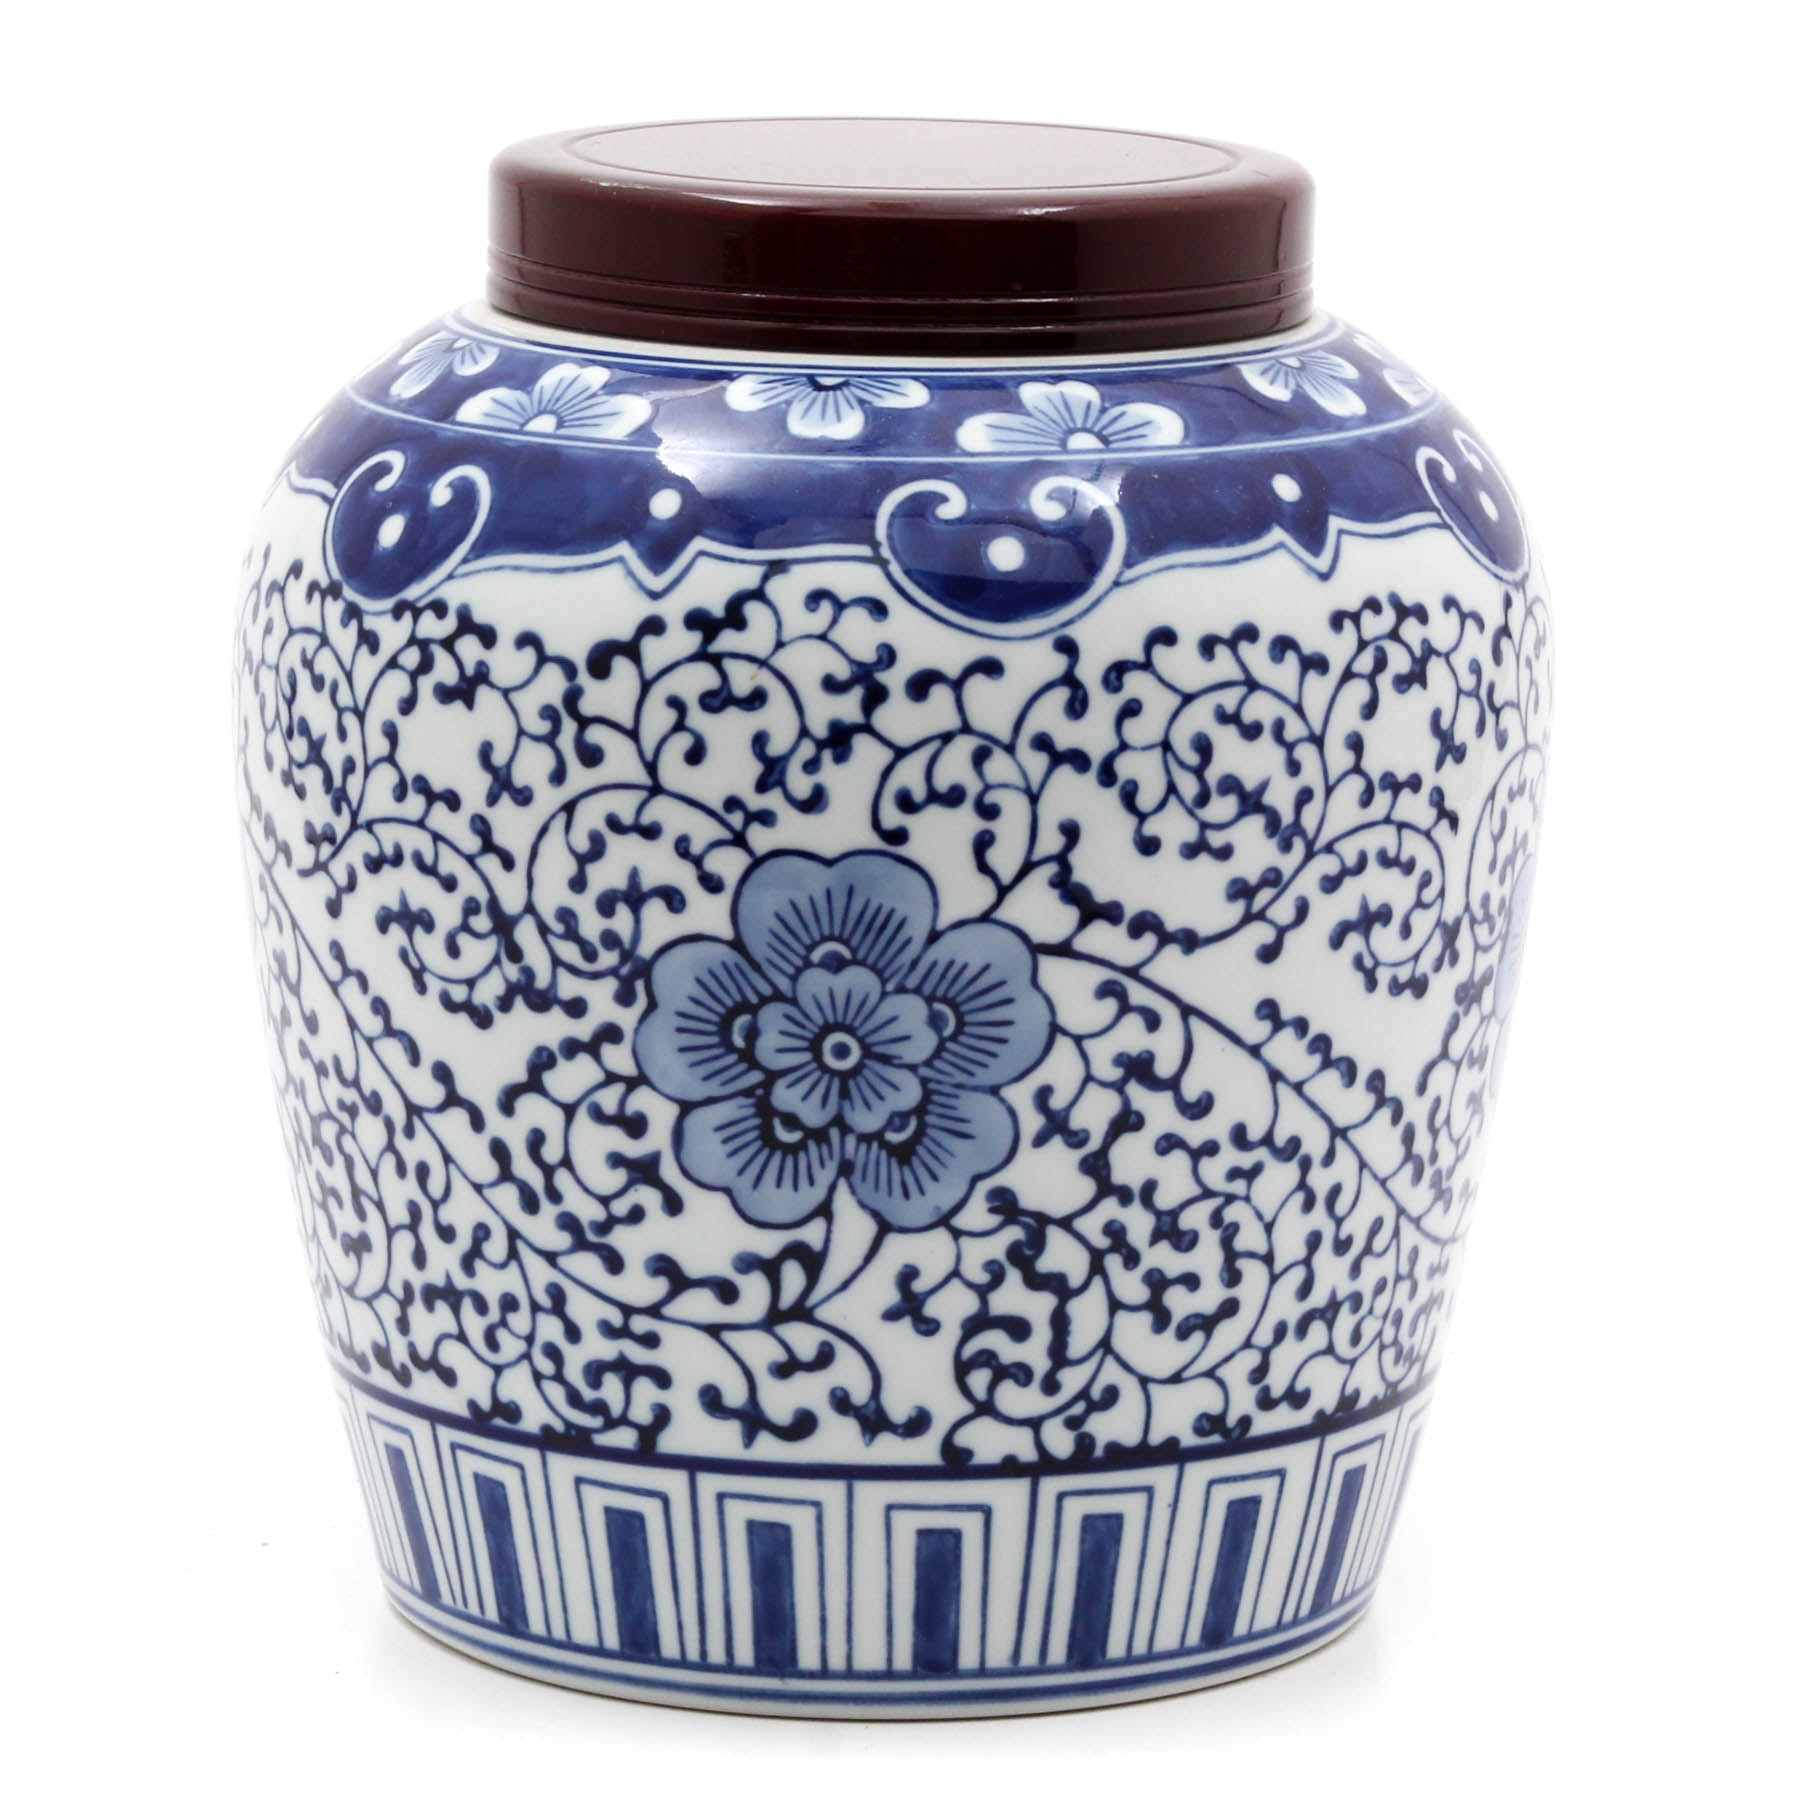 Contemporary Chinese Blue and White Ginger Jar with Wooden Lid